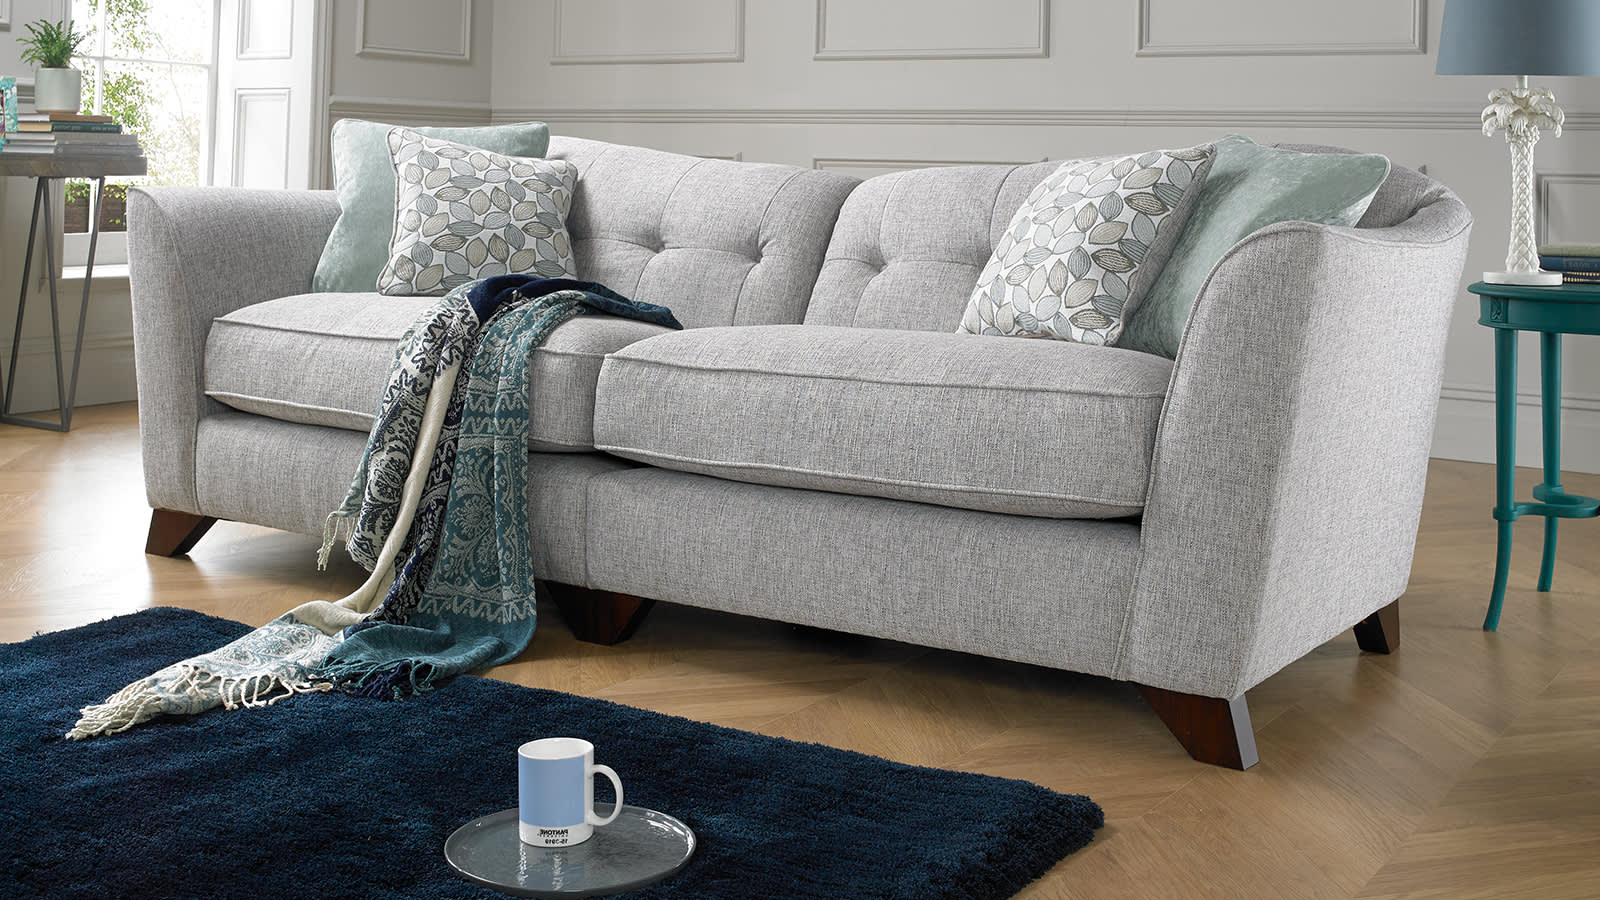 Sofas for Express Delivery in as little as 3 Days Sofology